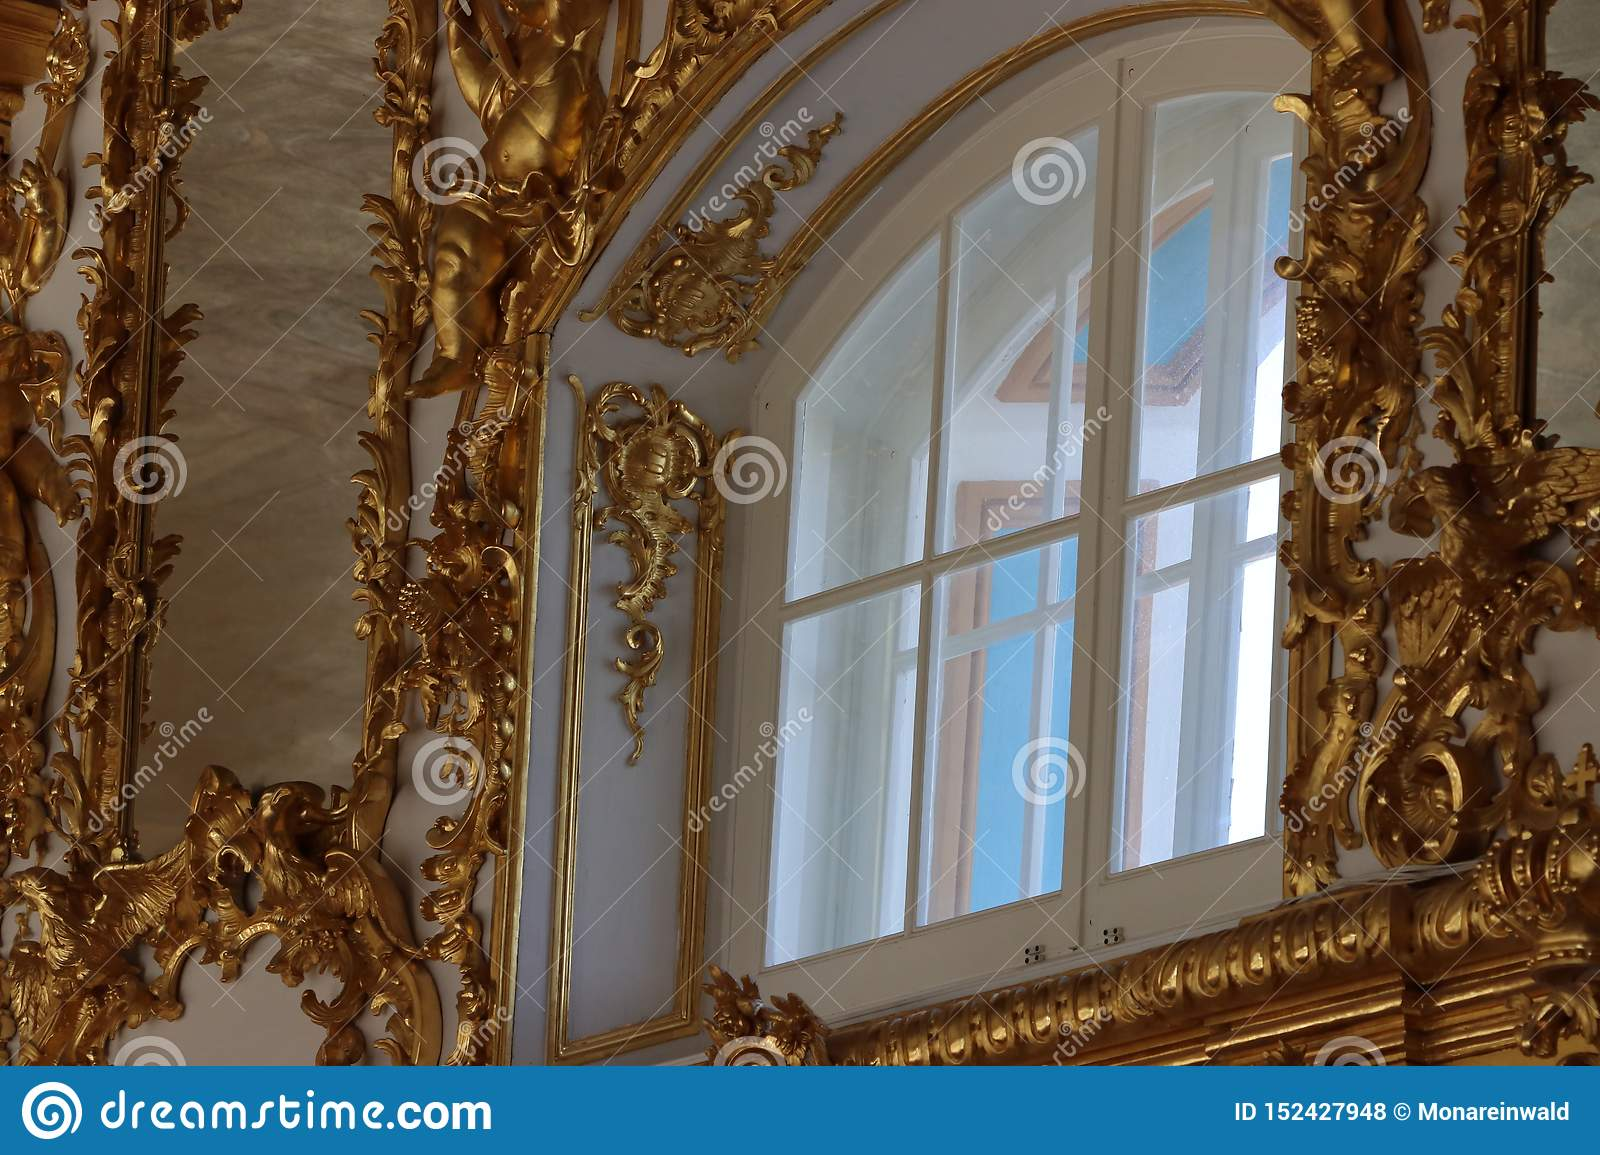 Catherine palast in st. petersburg in russia from inside with gold ornamentation.